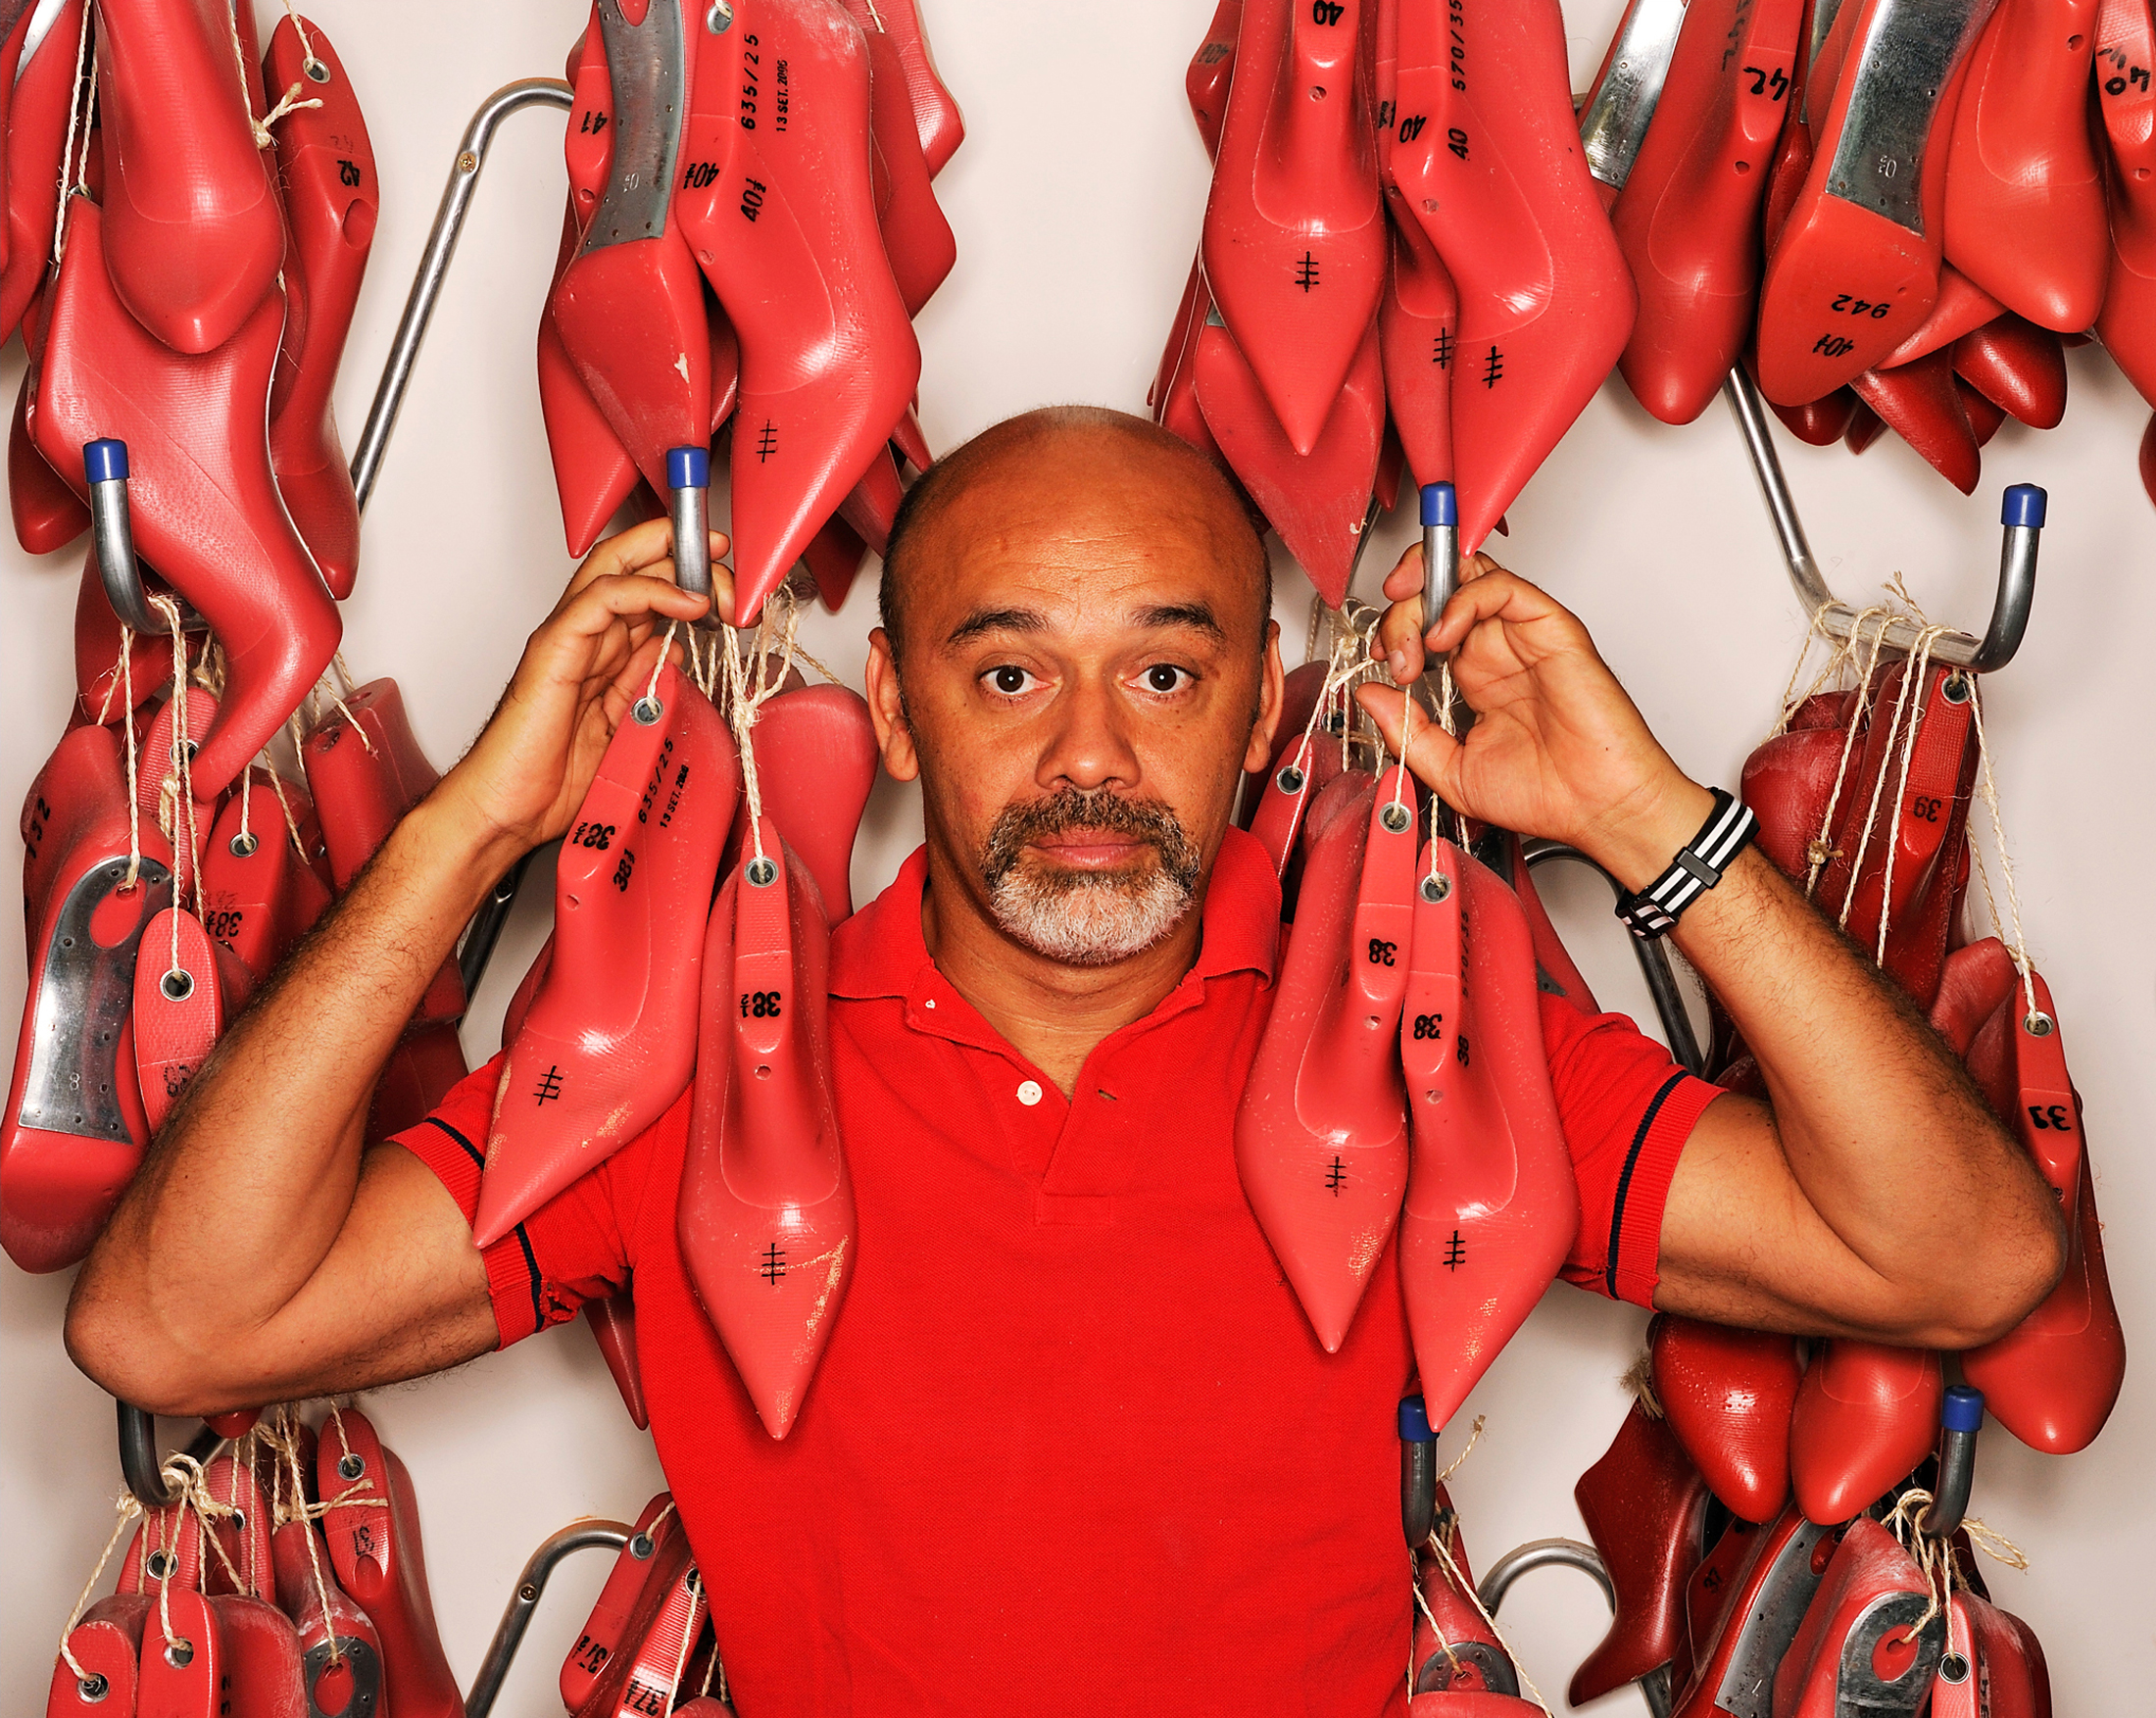 bf13bac27a49 The Man Behind the Red Soles  Christian Louboutin